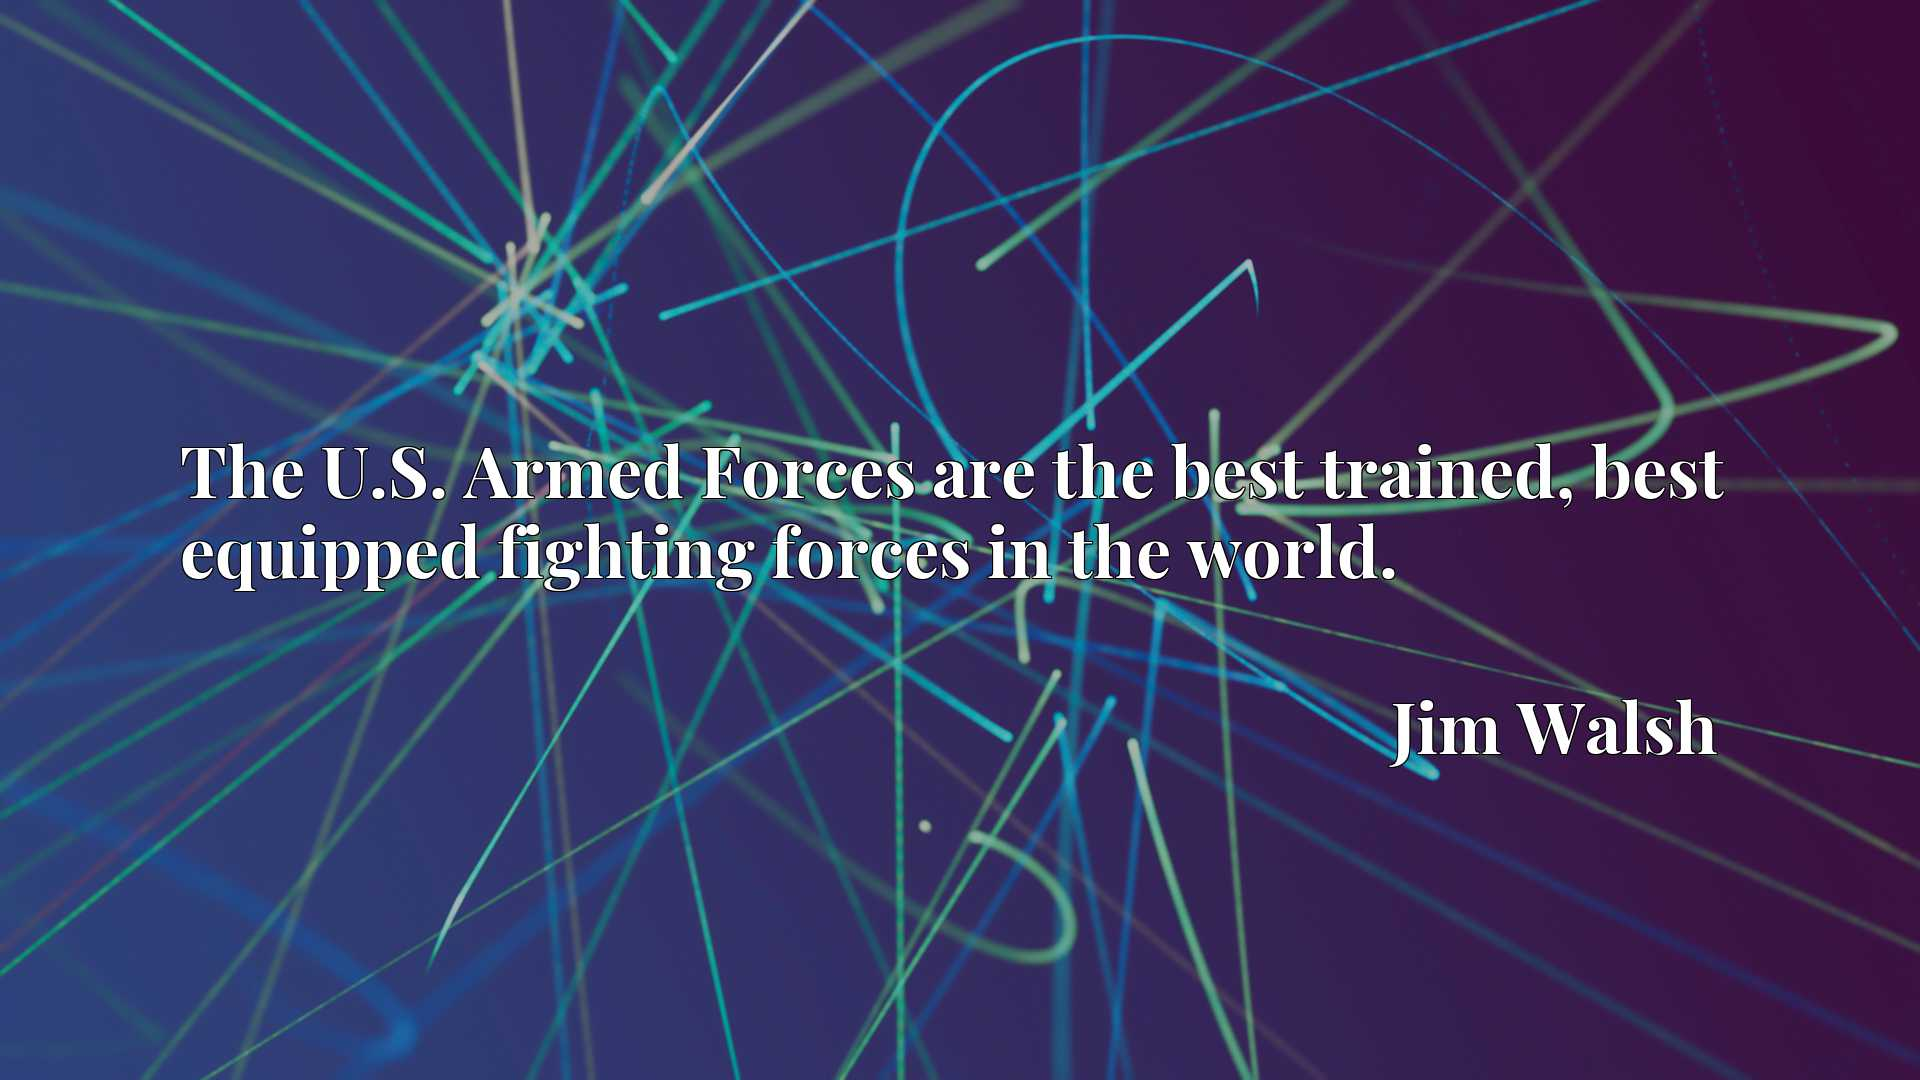 The U.S. Armed Forces are the best trained, best equipped fighting forces in the world.